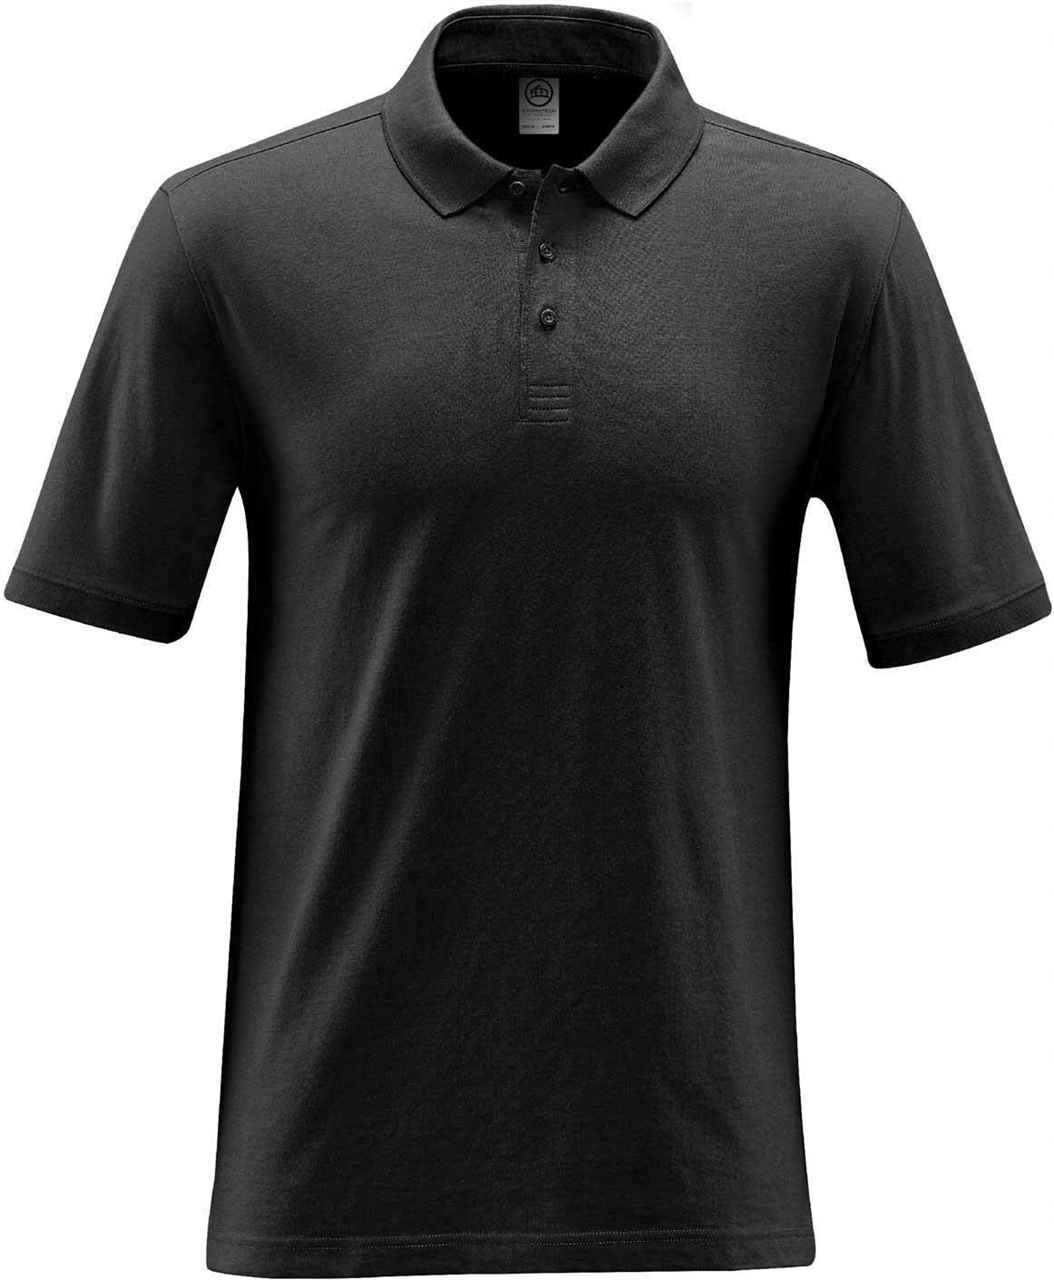 Picture of Men's Twilight Polo